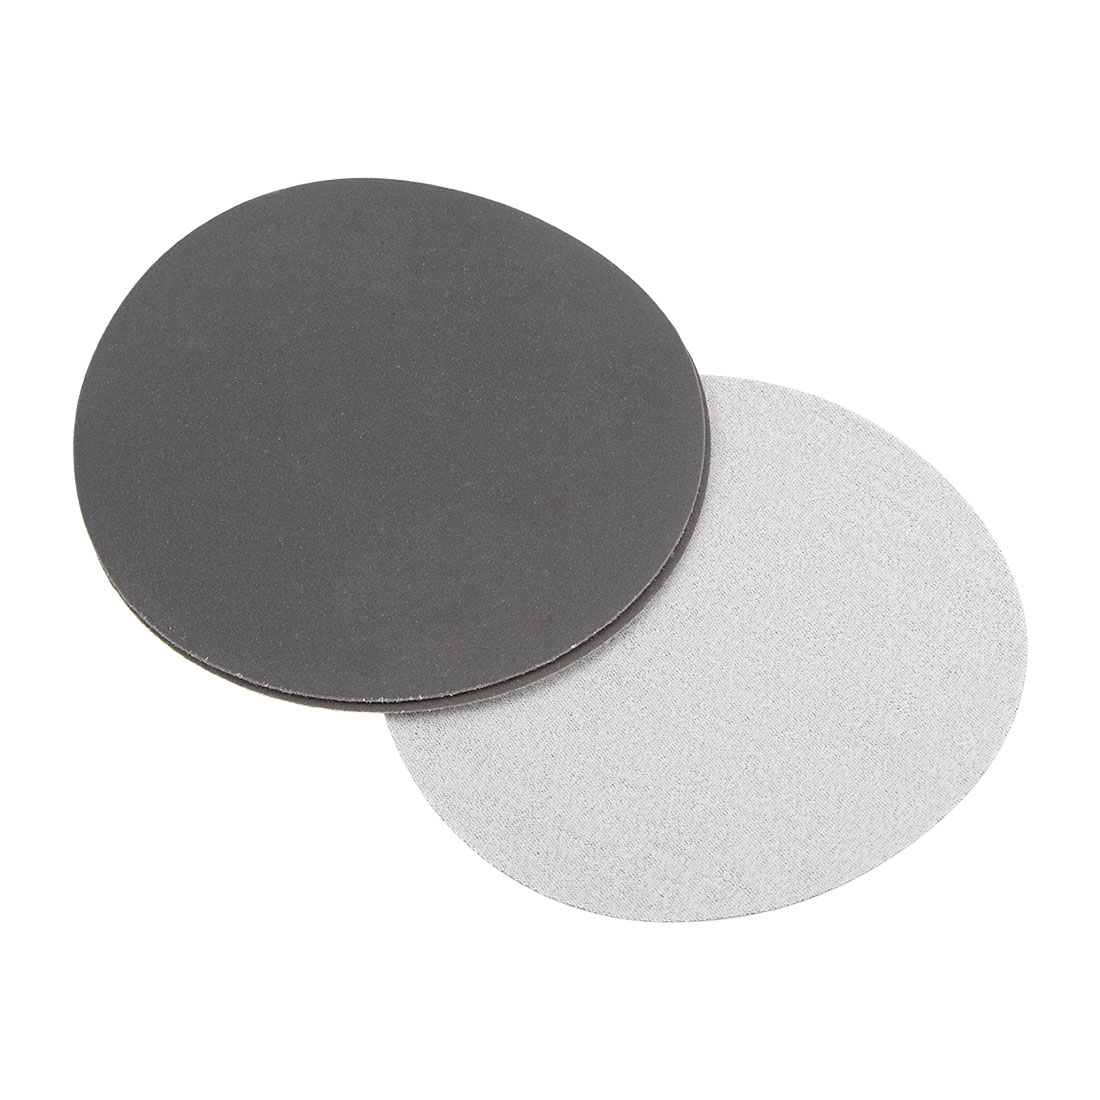 5 inch Wet Dry Discs 600 Grit Hook and Loop Sanding Disc Silicon Carbide 3pcs